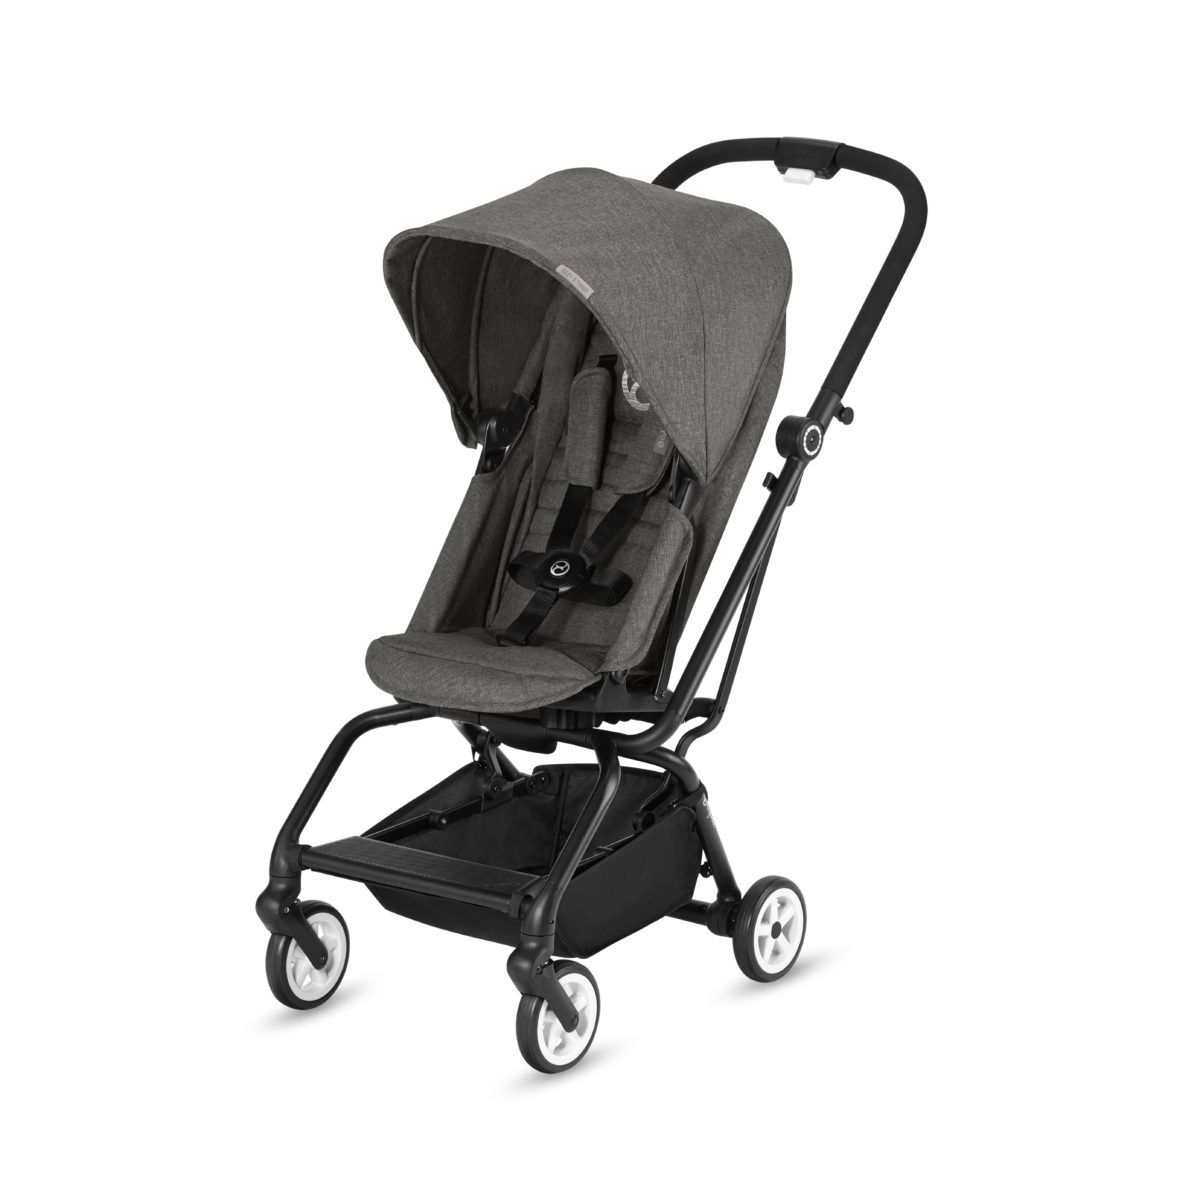 Habillage Pluie Poussette Ferrari Eezy S Twist Stroller All About Baby Baby Strollers